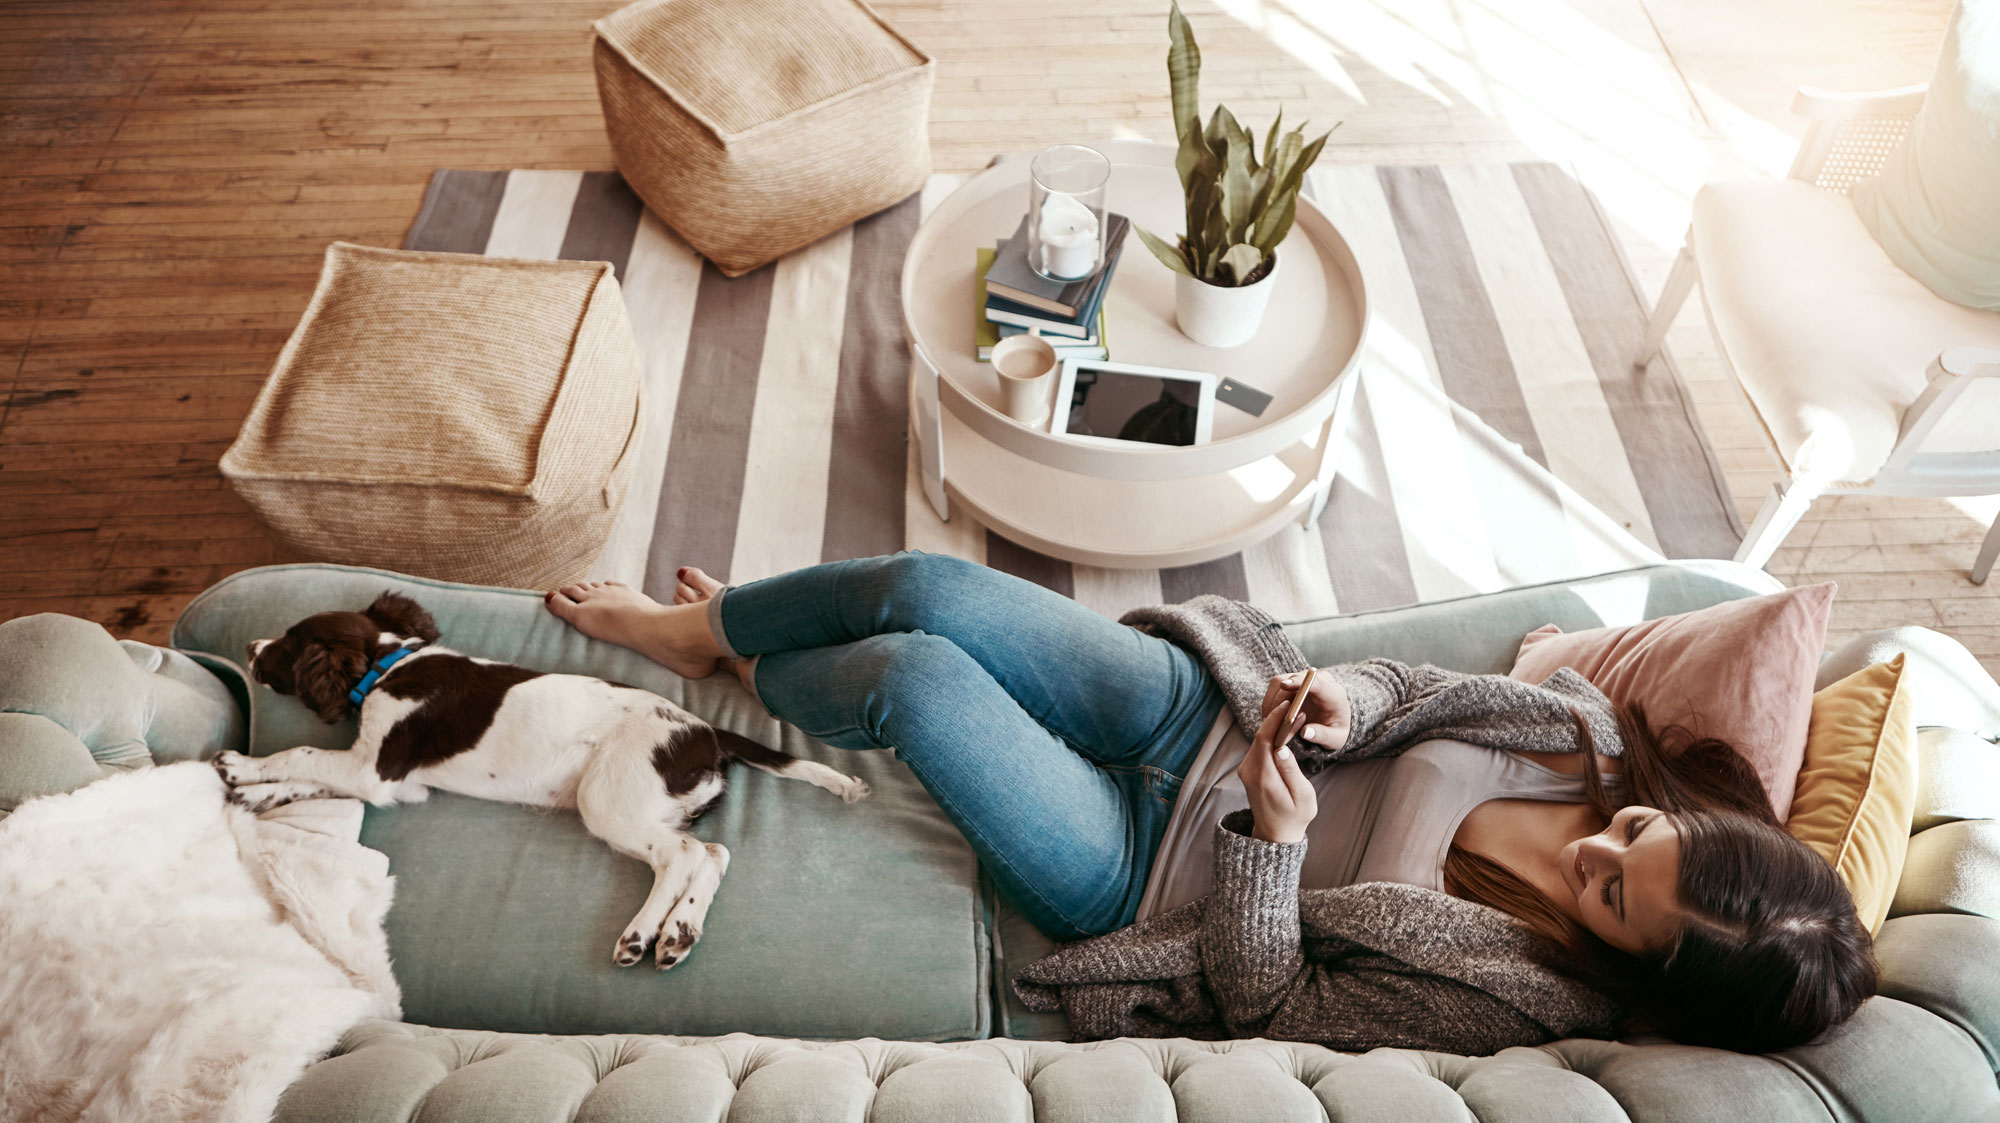 Young woman looking at her phone while laying on a couch with a dog